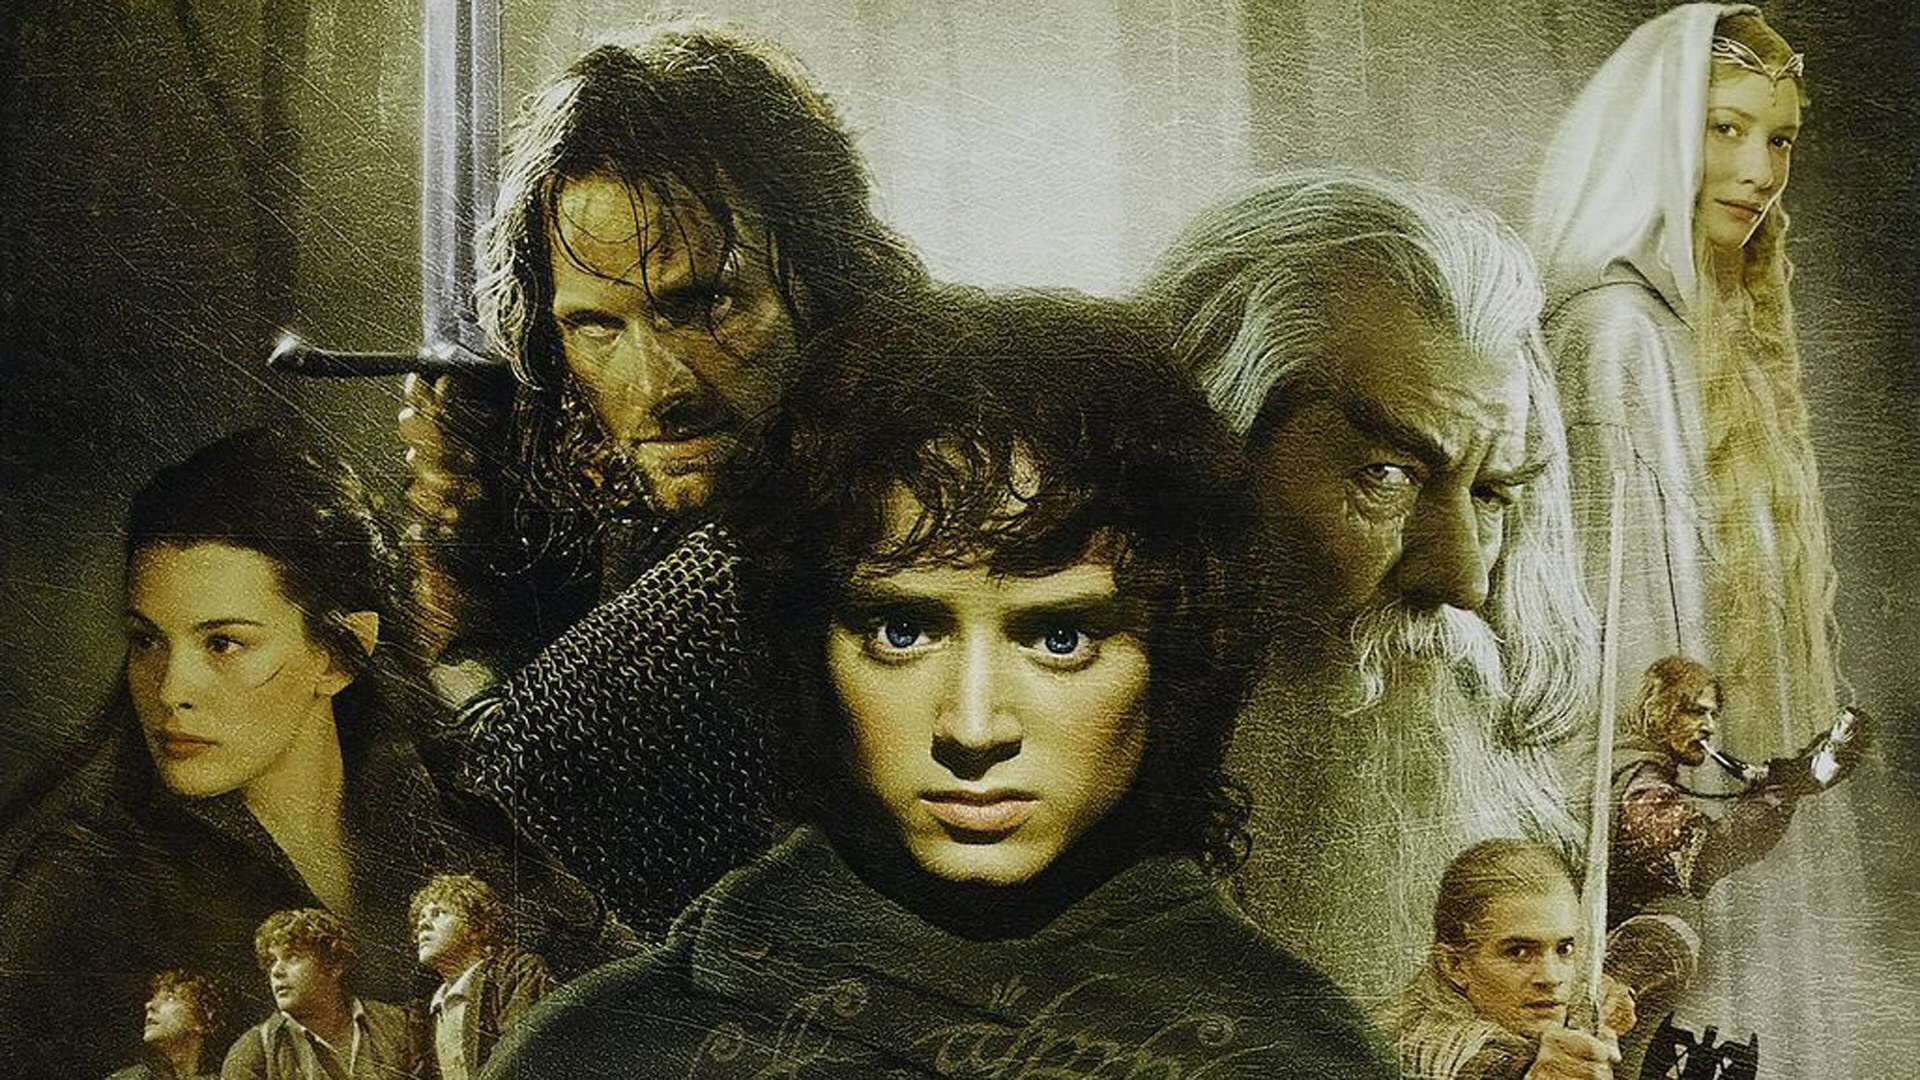 The Lord of the Rings Wallpapers 1920x1080